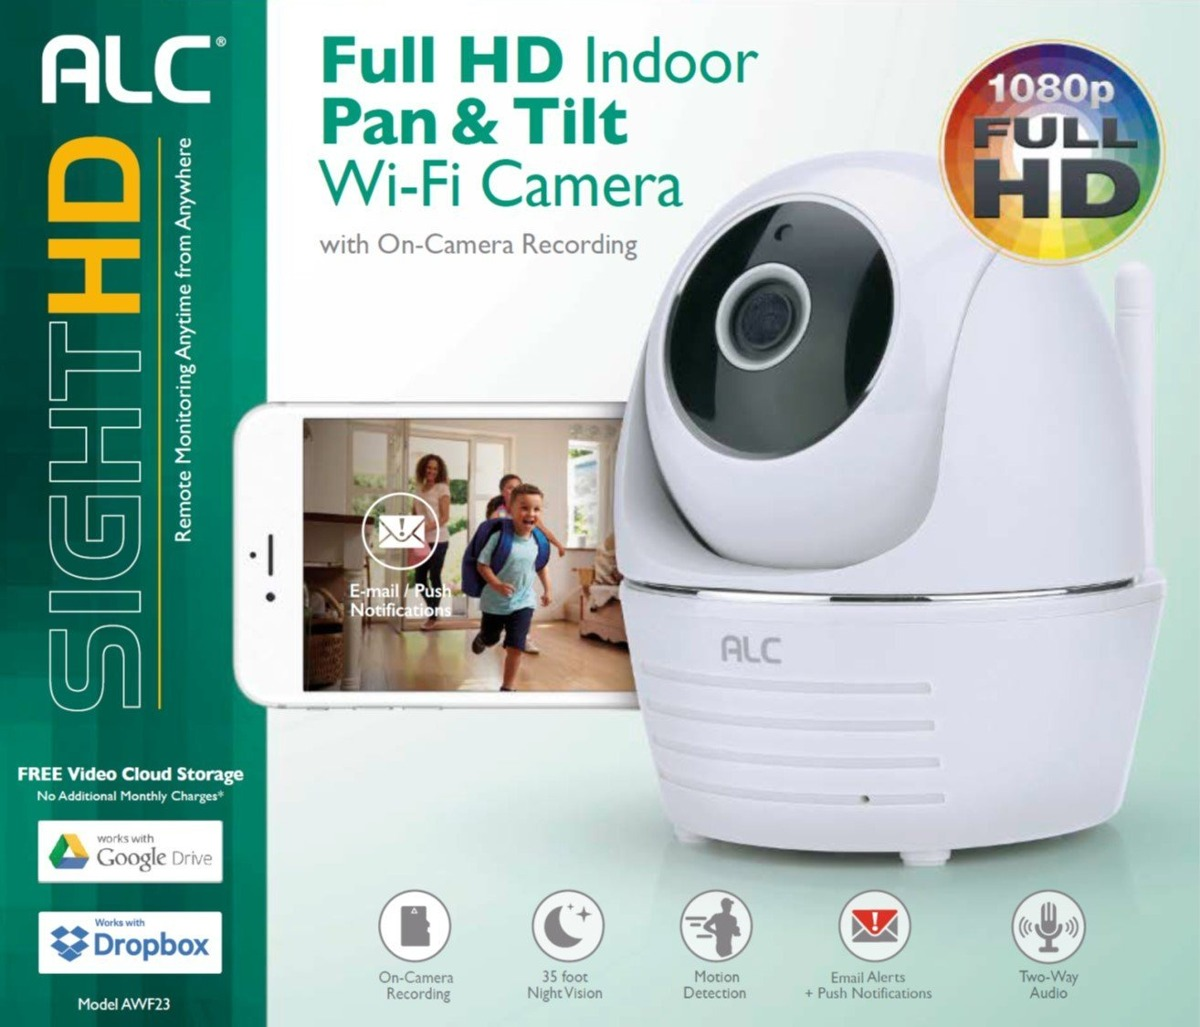 Alc Sighthd Awf23 Pan & Tilt Security Wifi Camera